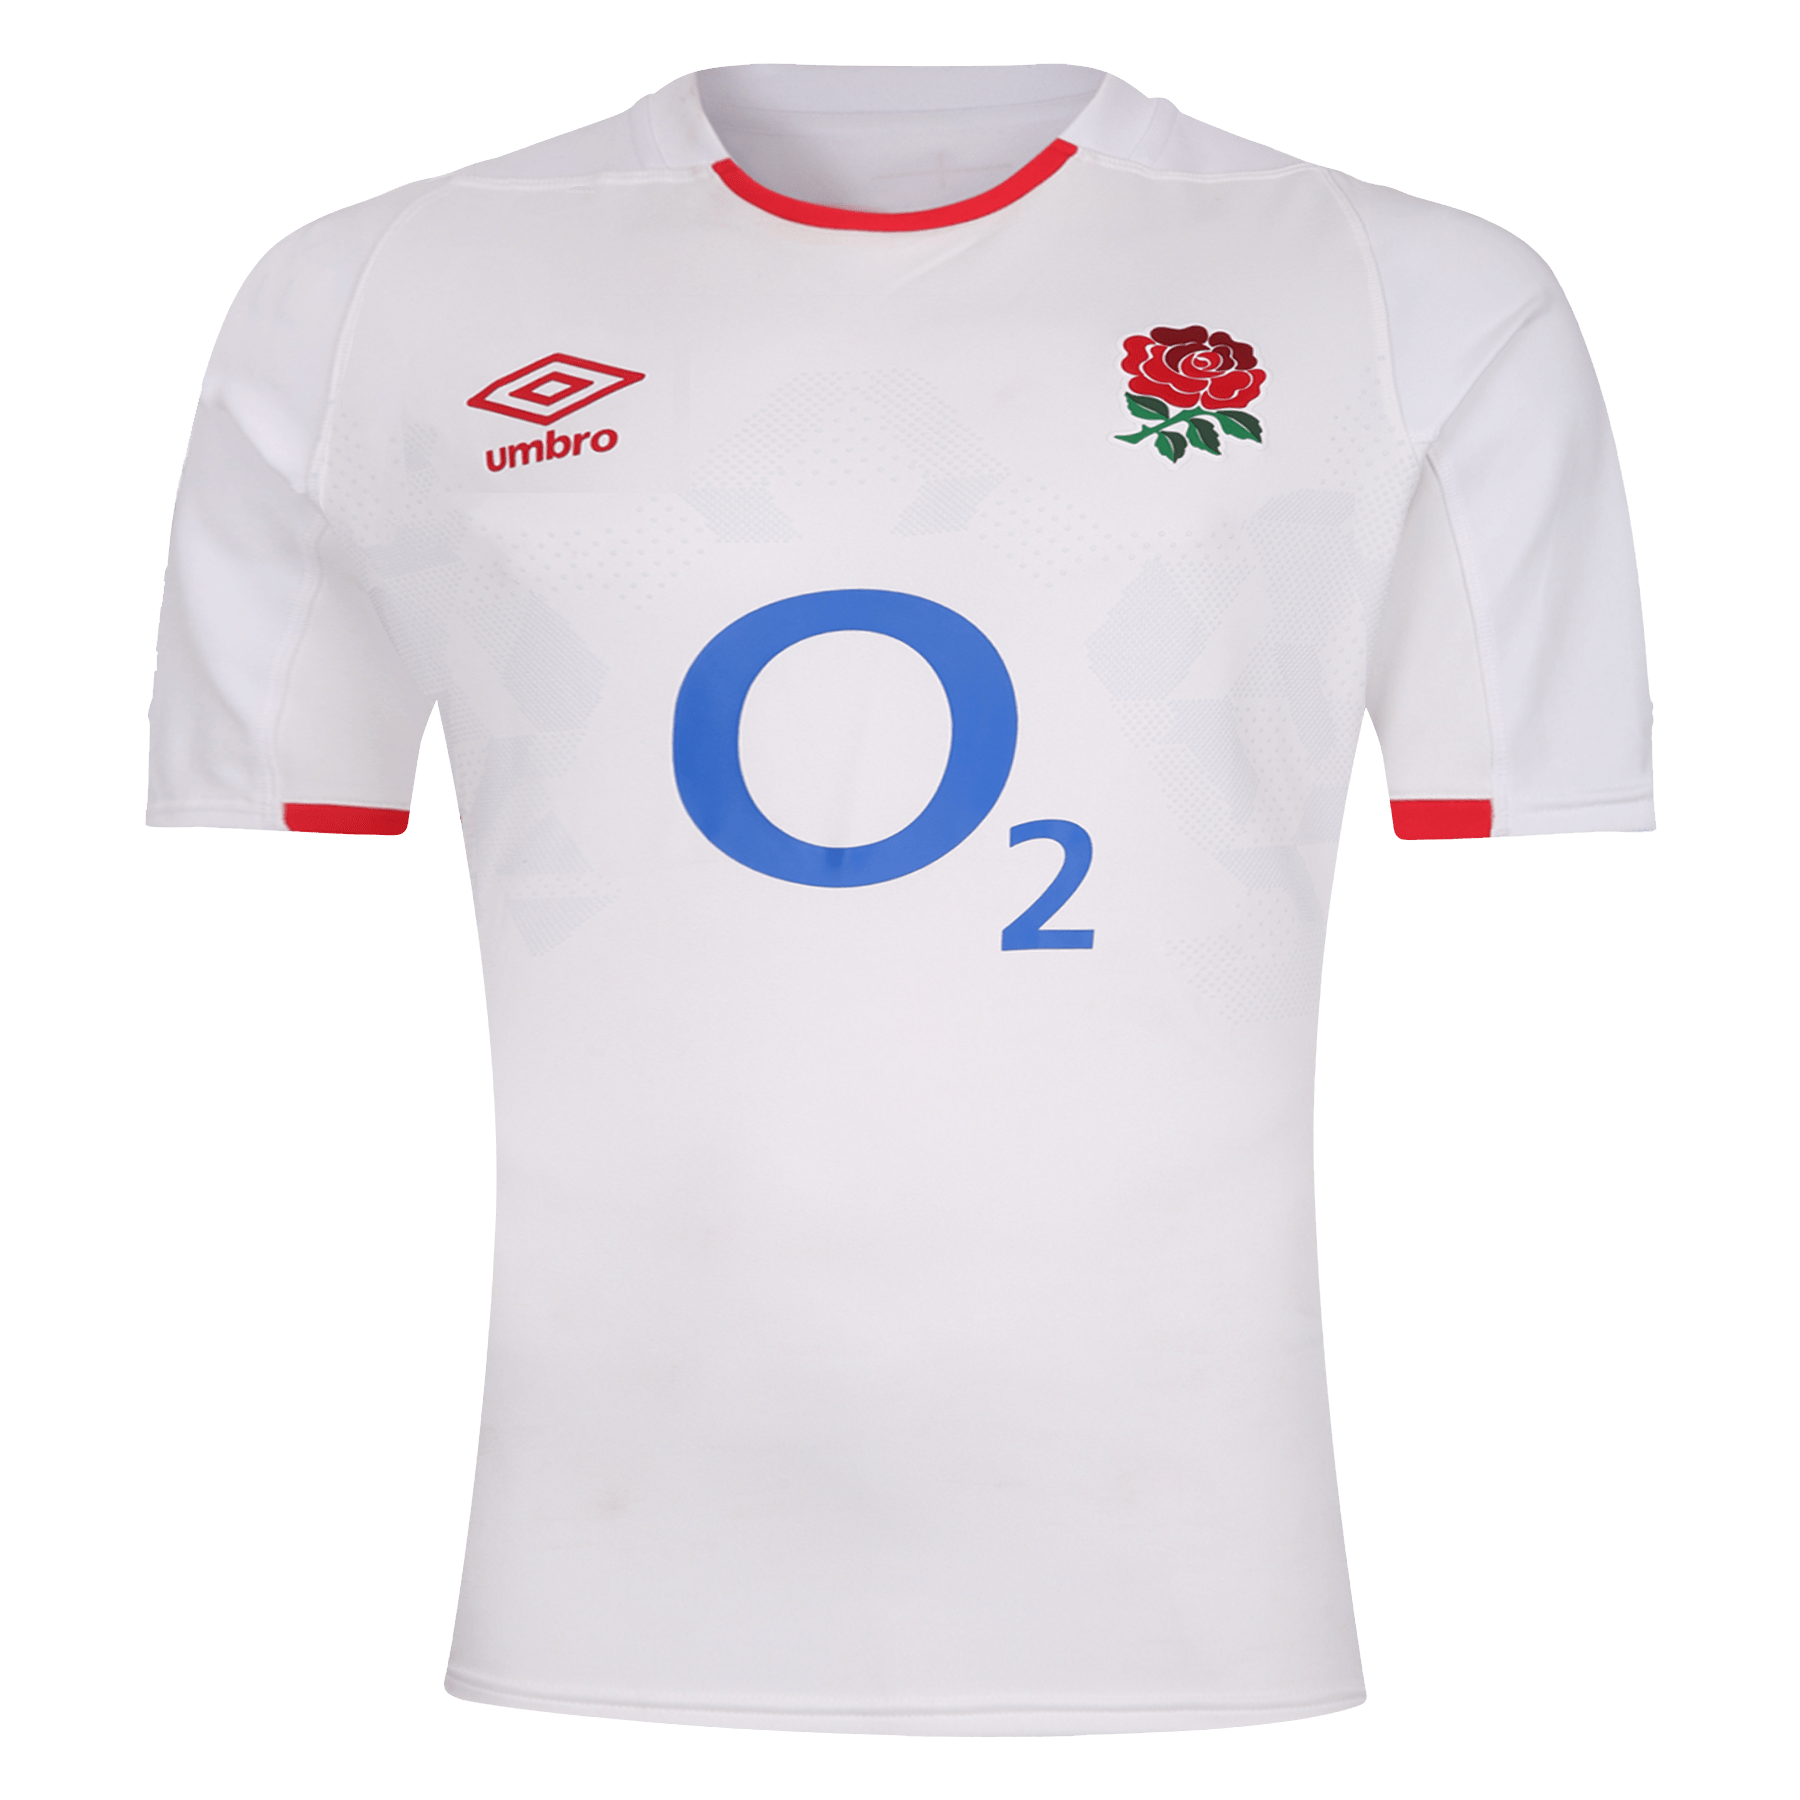 Umbro England Home Rugby Jersey